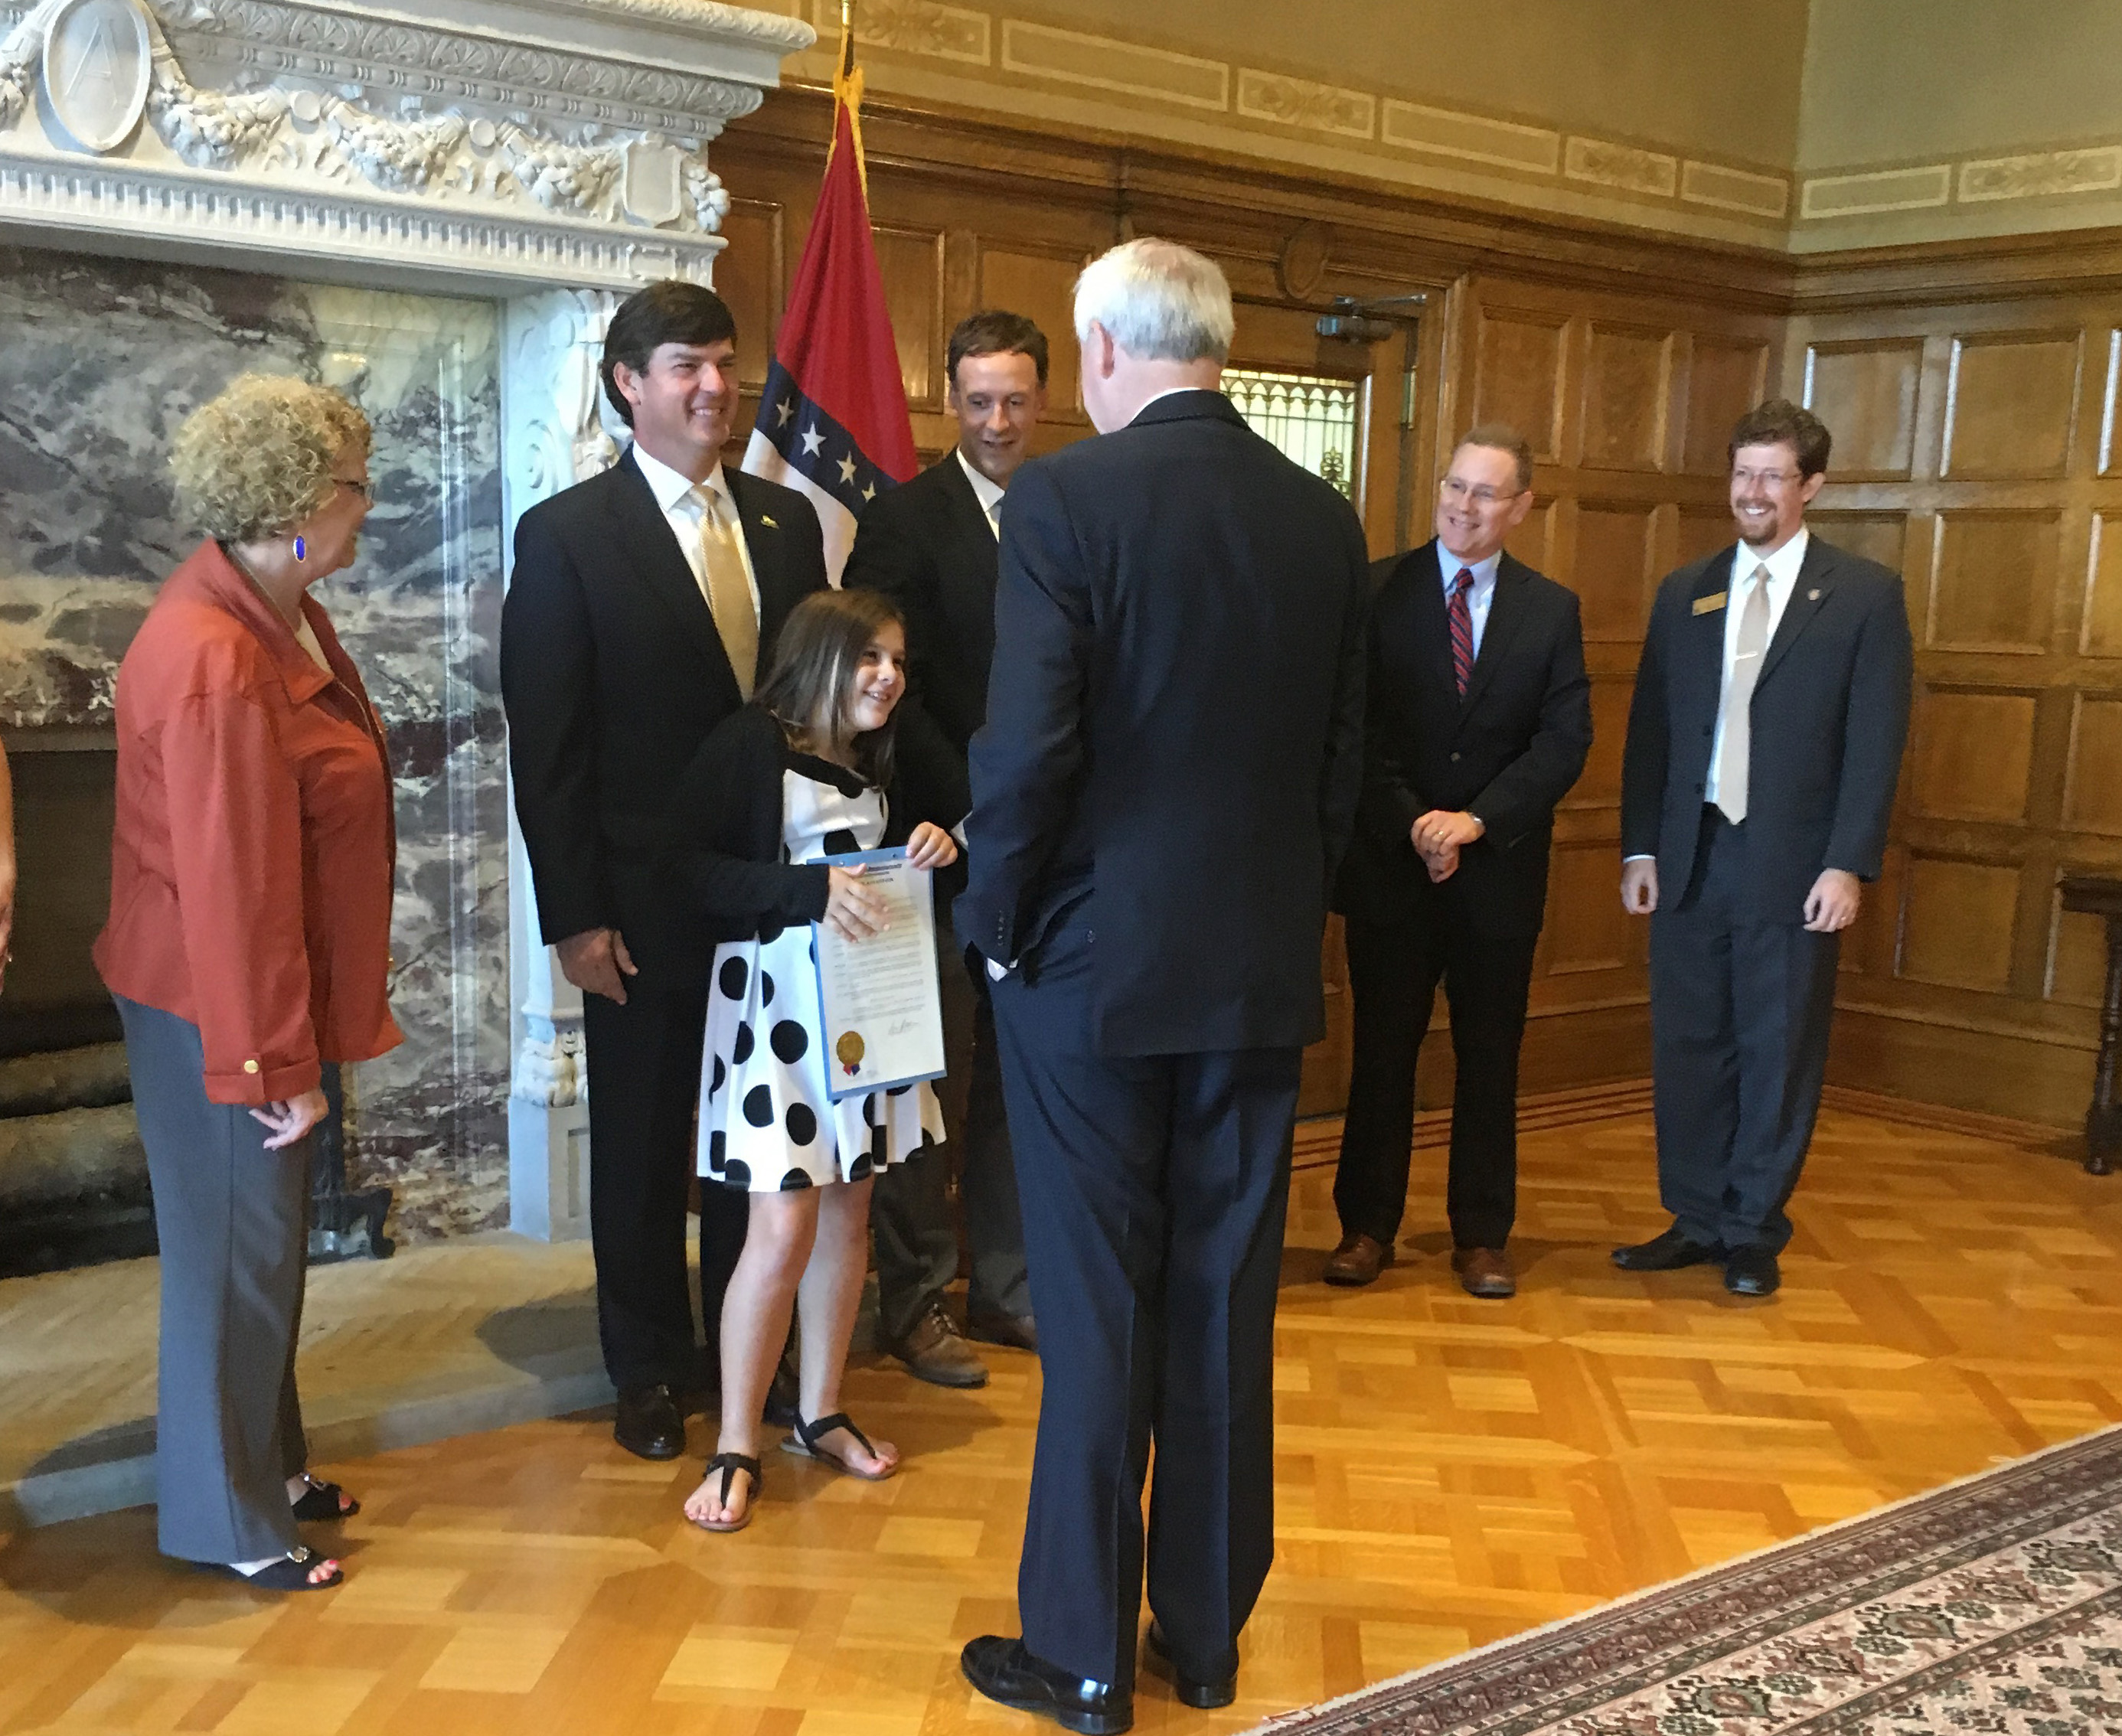 National Rice Month Proclamation signing with Arkansas Governor Asa Hutchinson